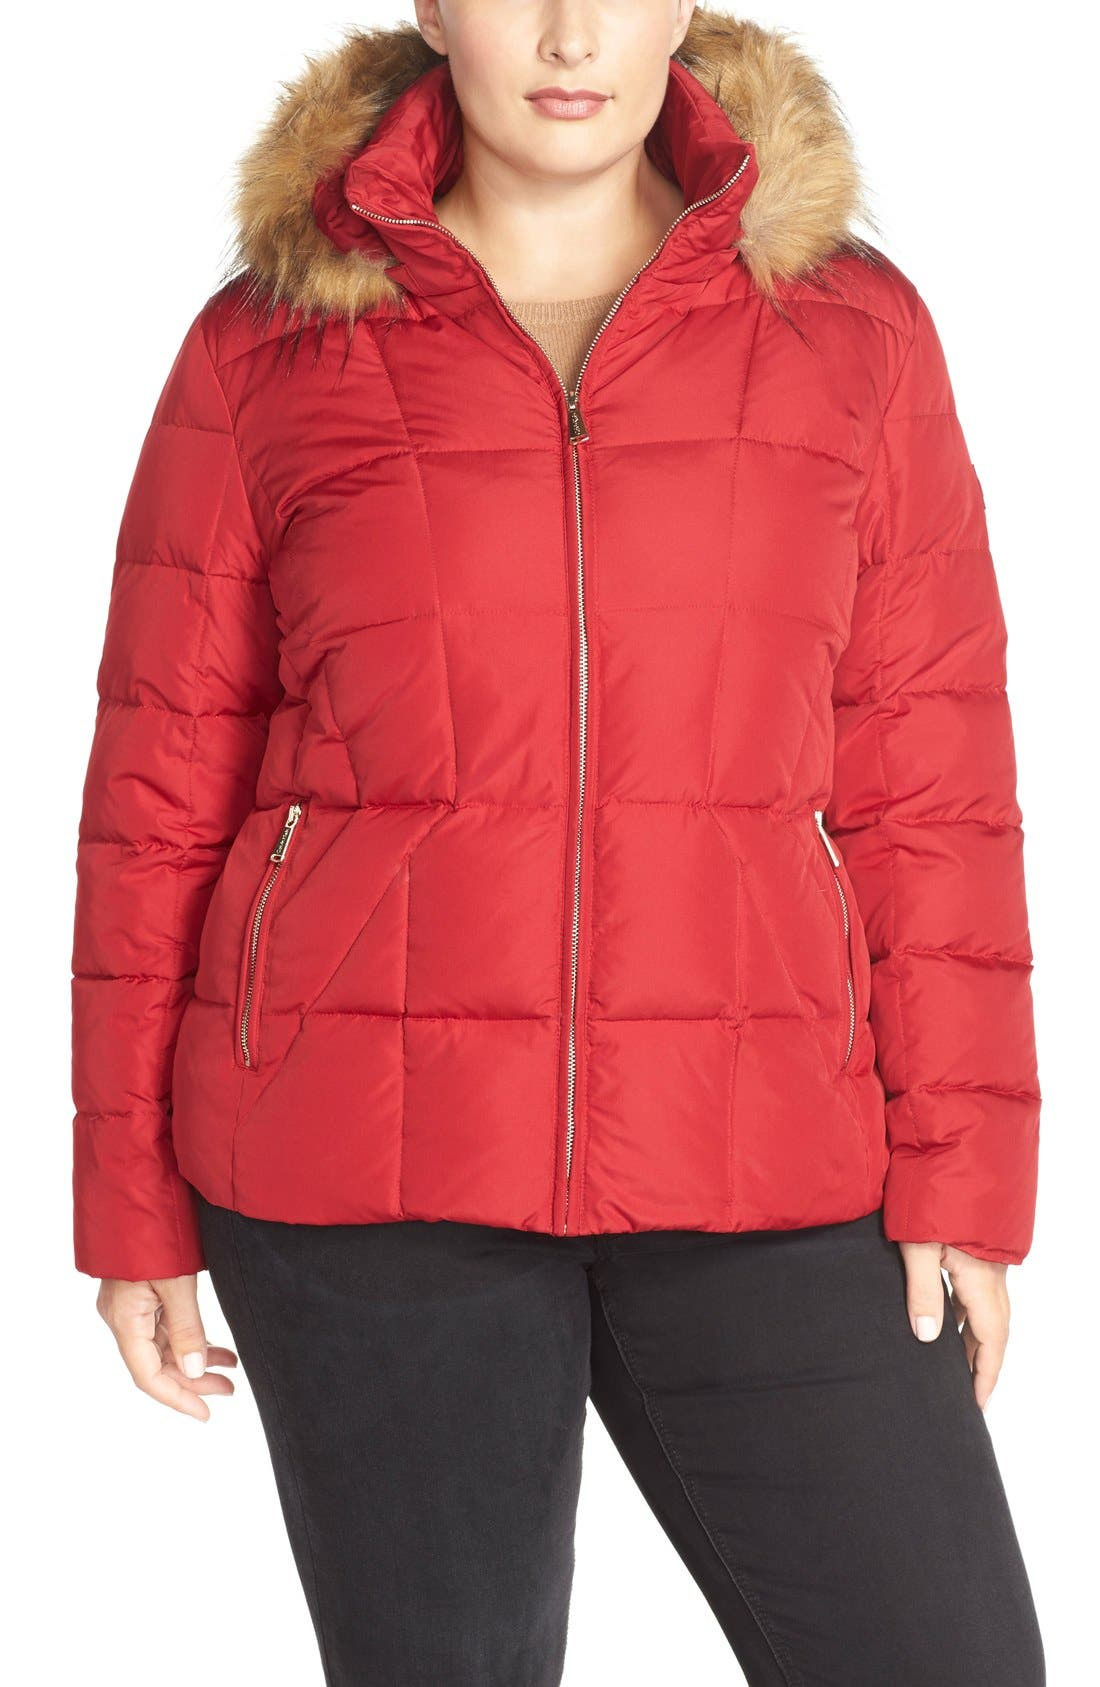 Main Image - Calvin Klein Hooded Down & Feather Fill Jacket with Faux Fur Trim (Plus Size)